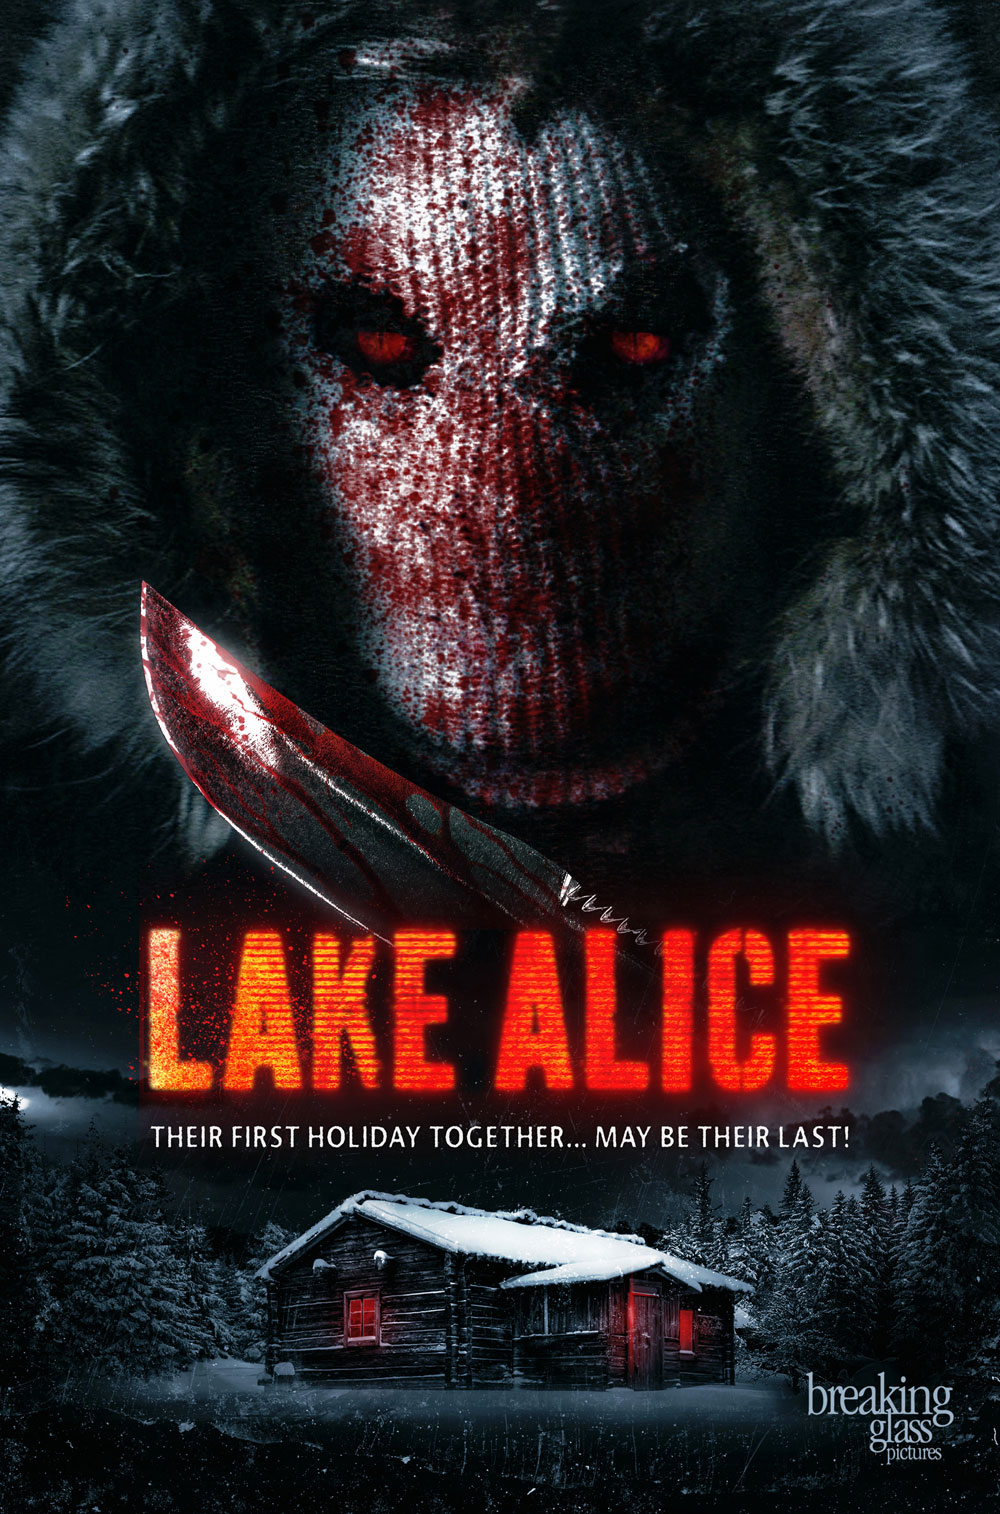 Lake Alice Artwork